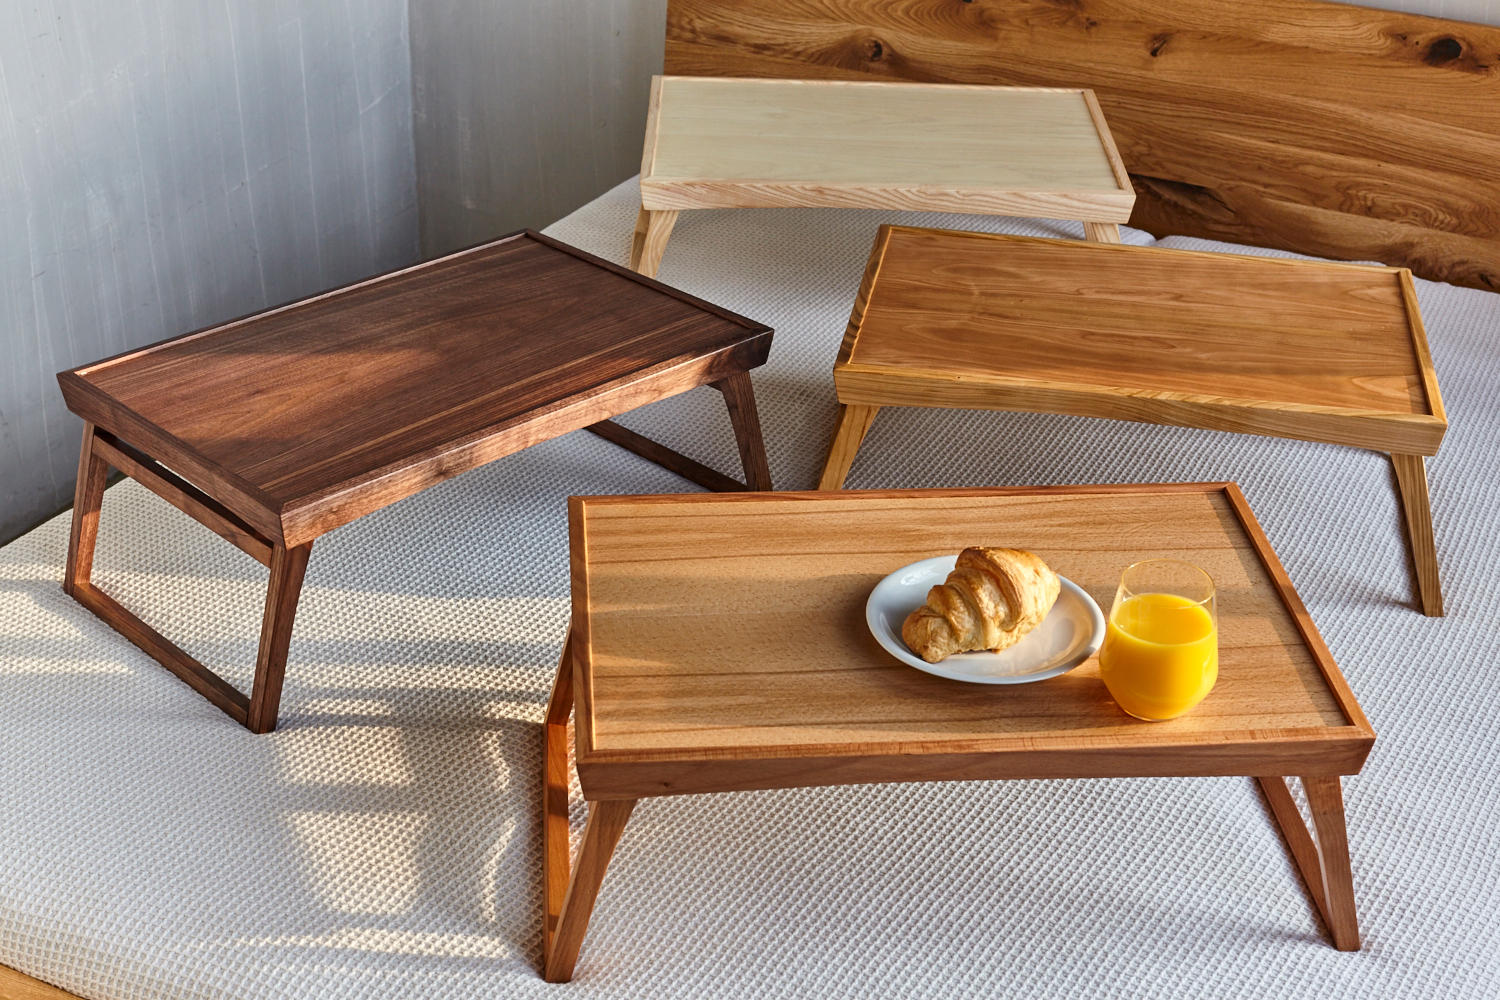 D 201 Sir 201 E Bed Tray Table Trays From Sixay Furniture